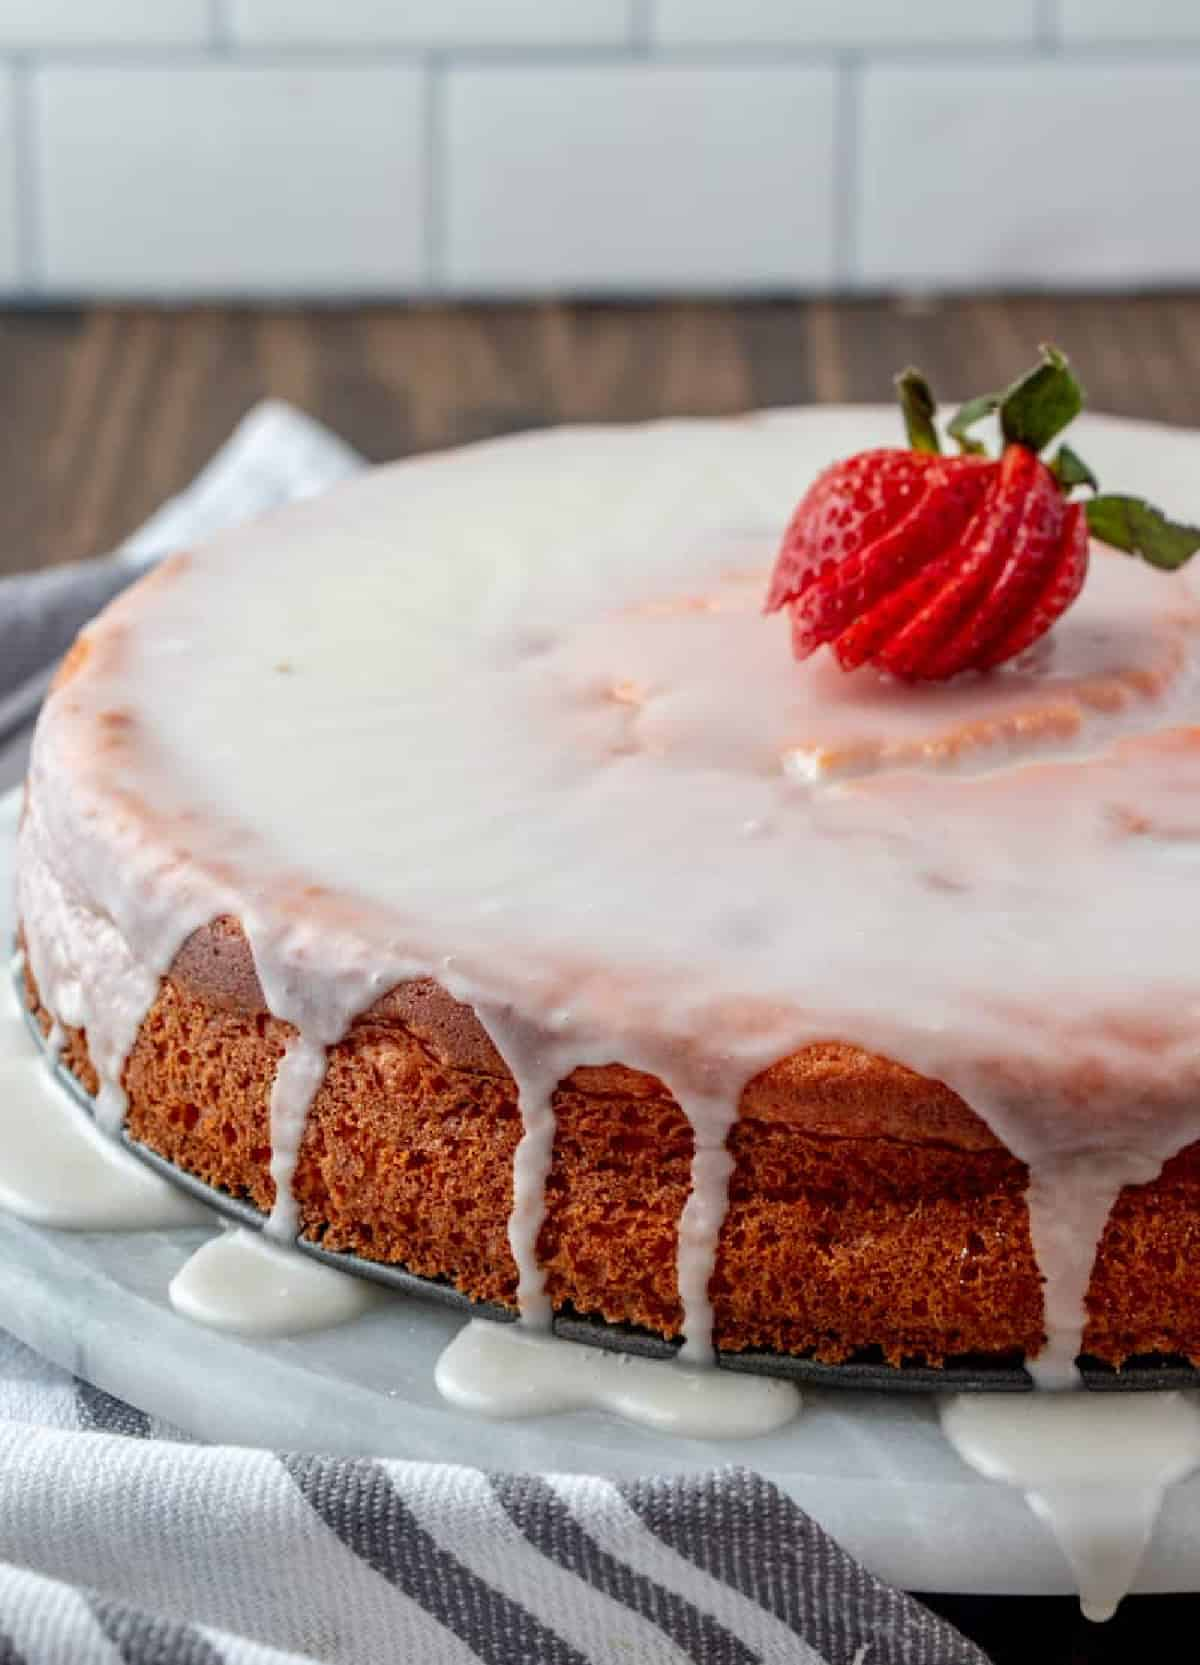 Whole cake on turntable glazed and topped with a strawberry